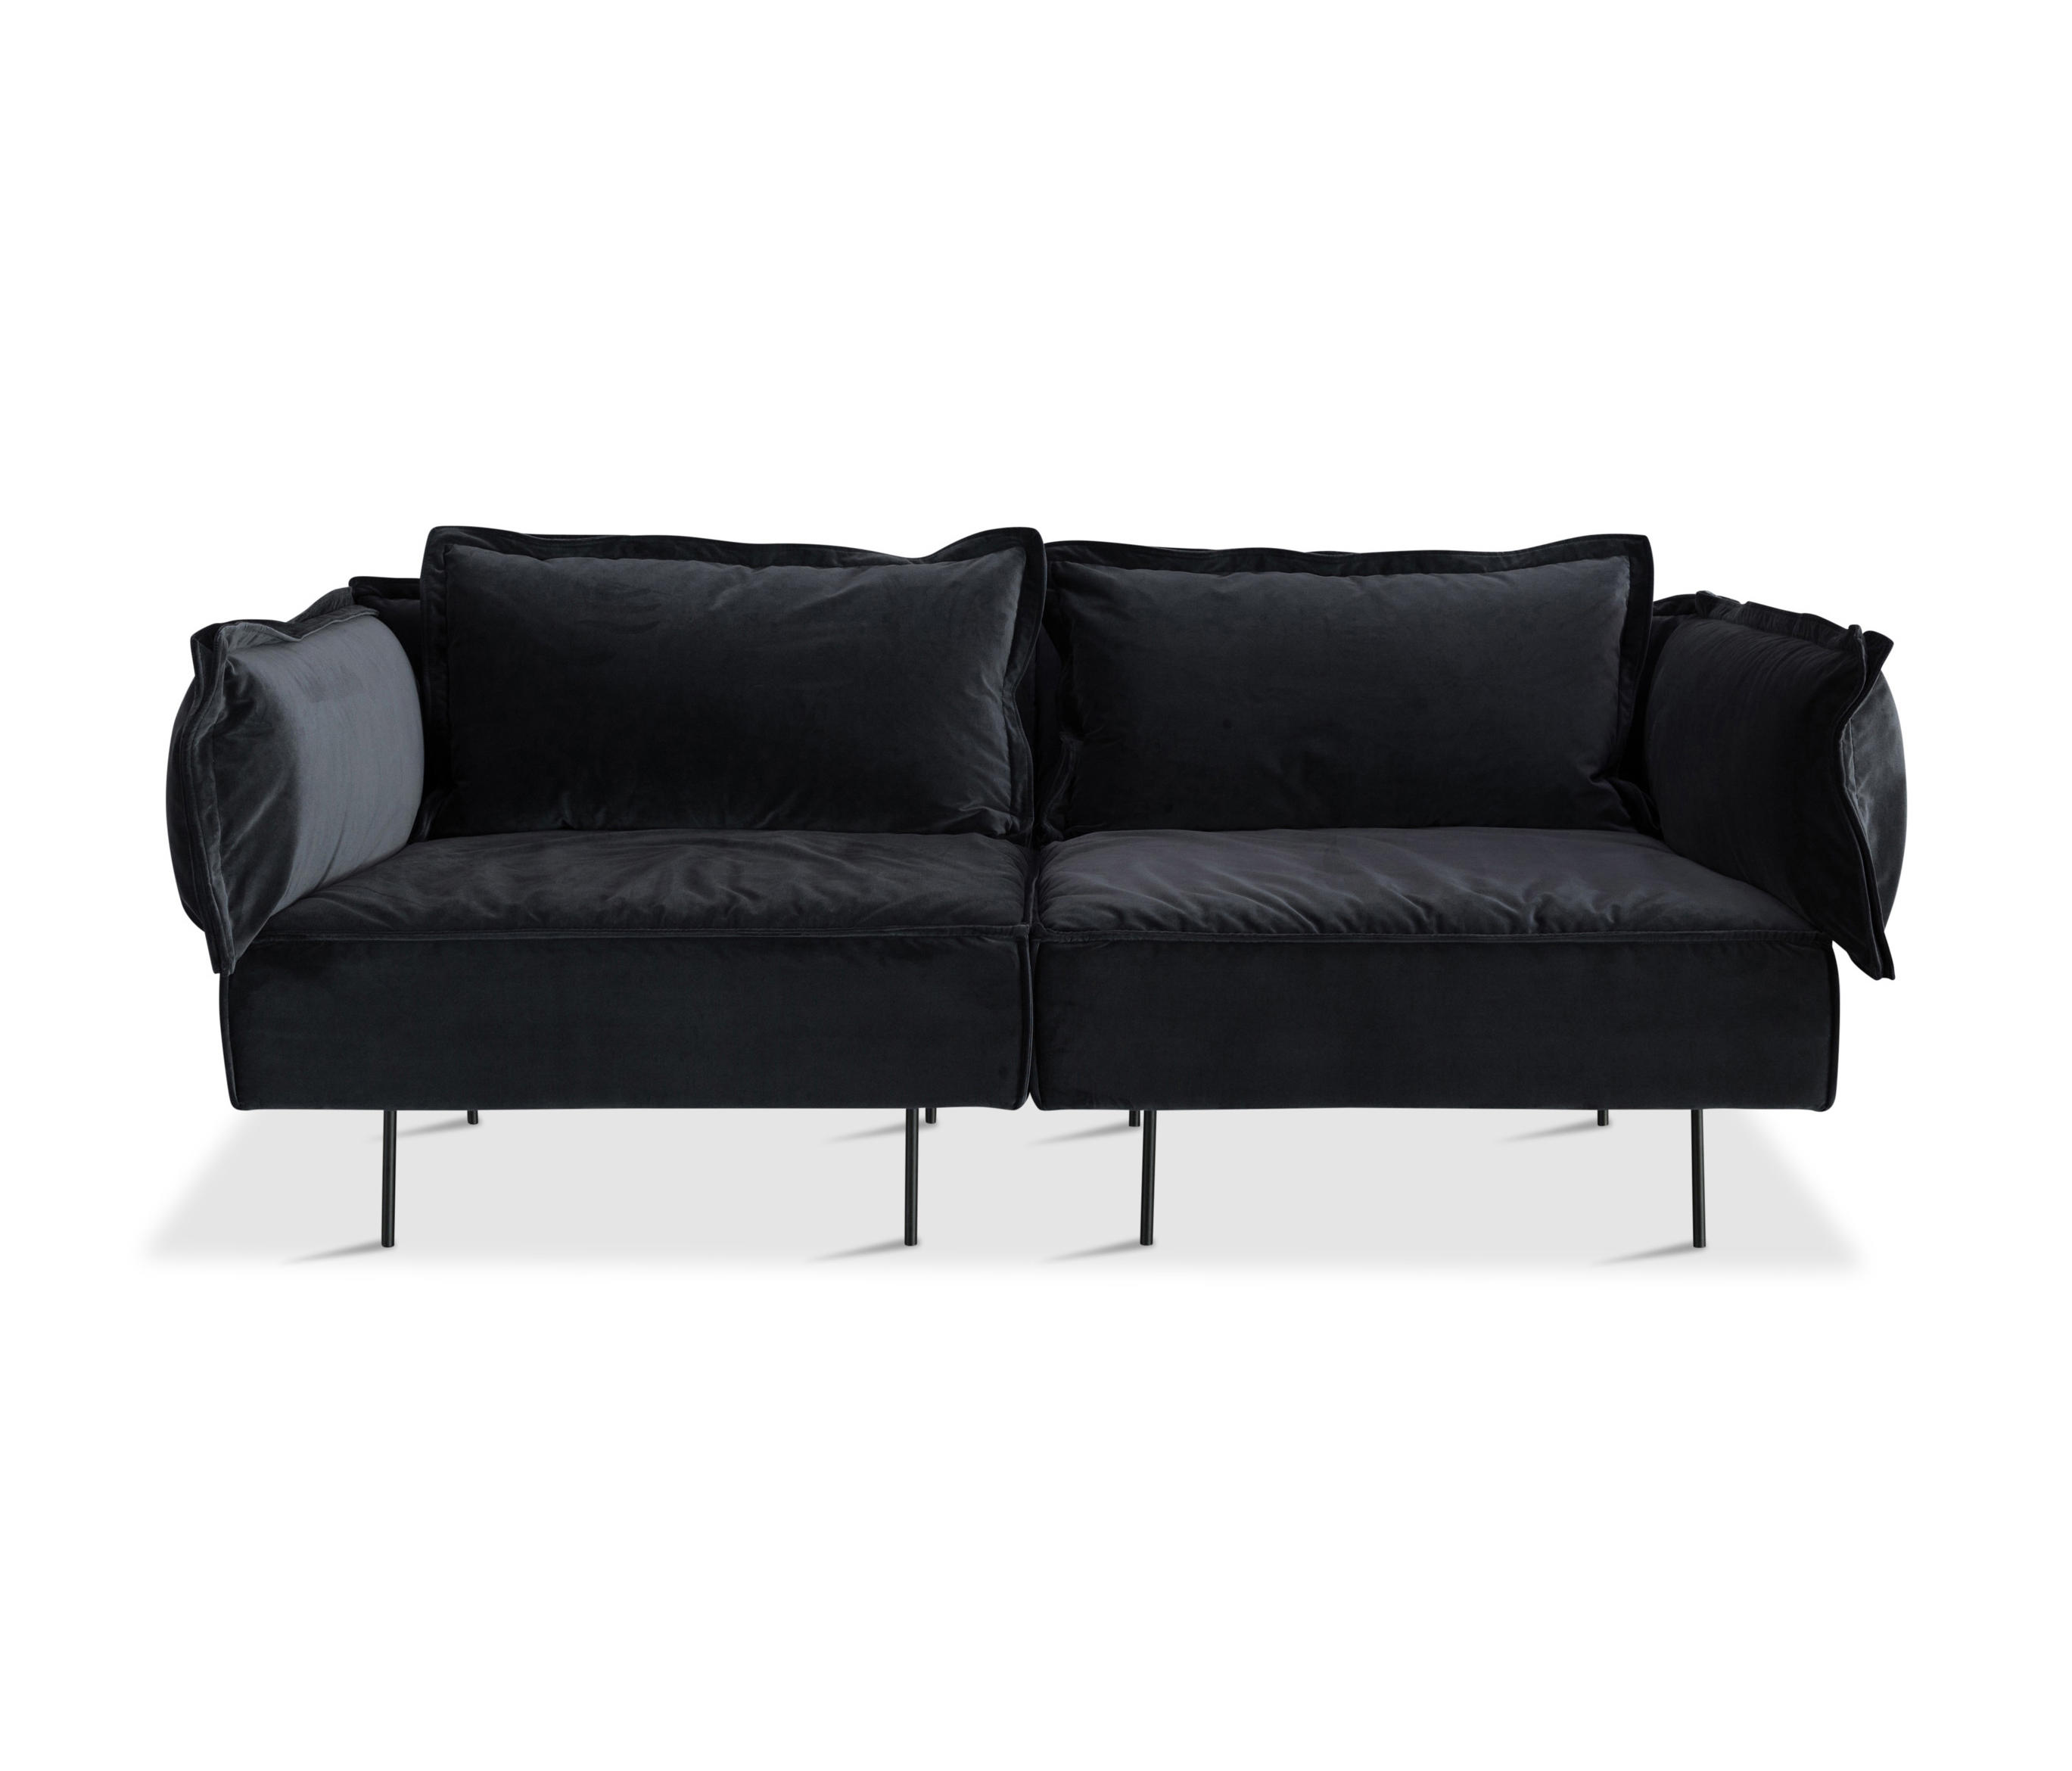 2 Seat Sofa Dark Grey Lounge Sofas From Handv Rk